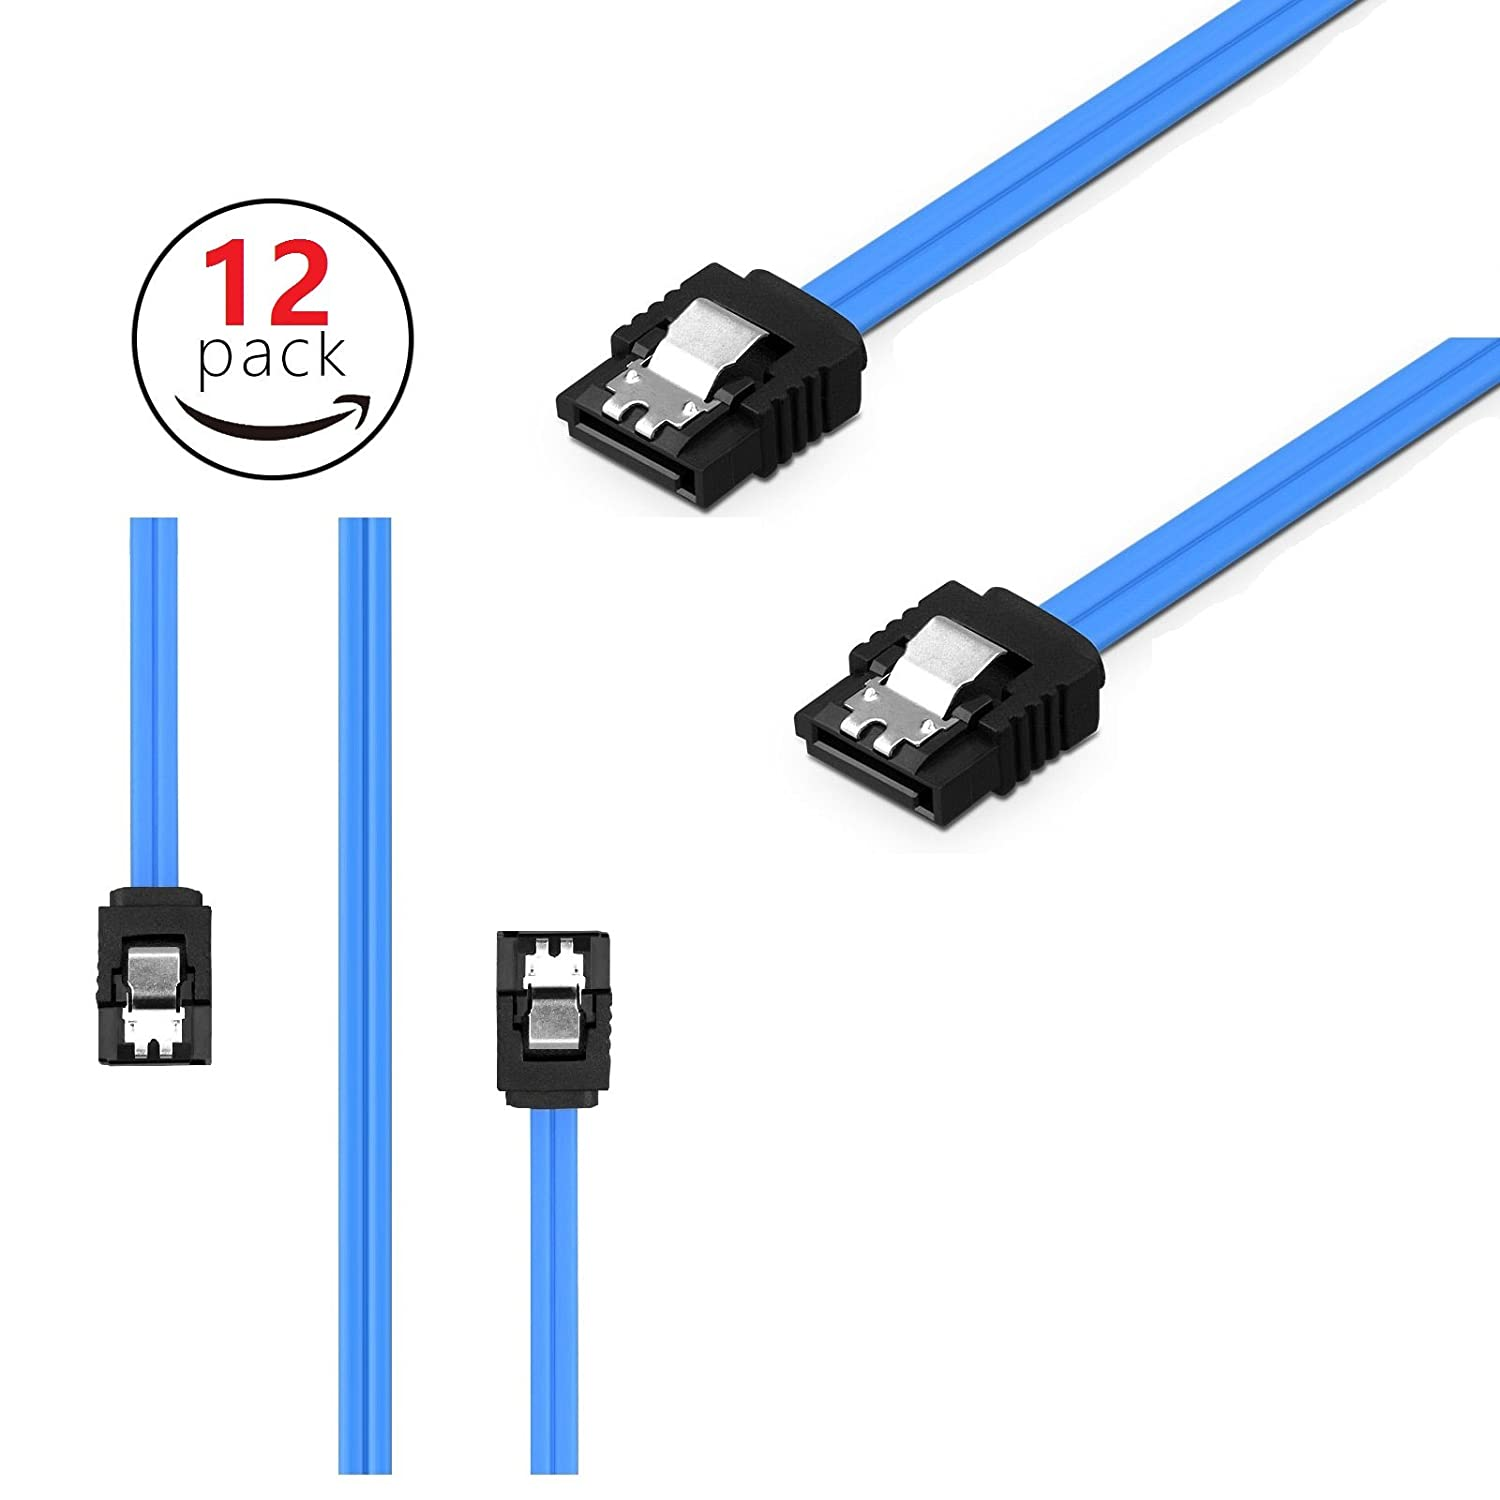 Blue 12 pack Sata Cables Sata Cable SATA III 6.0 Gbps 7pin Female to Female Data Cable with Locking Latch for Hdd 18-inch SATA Cables